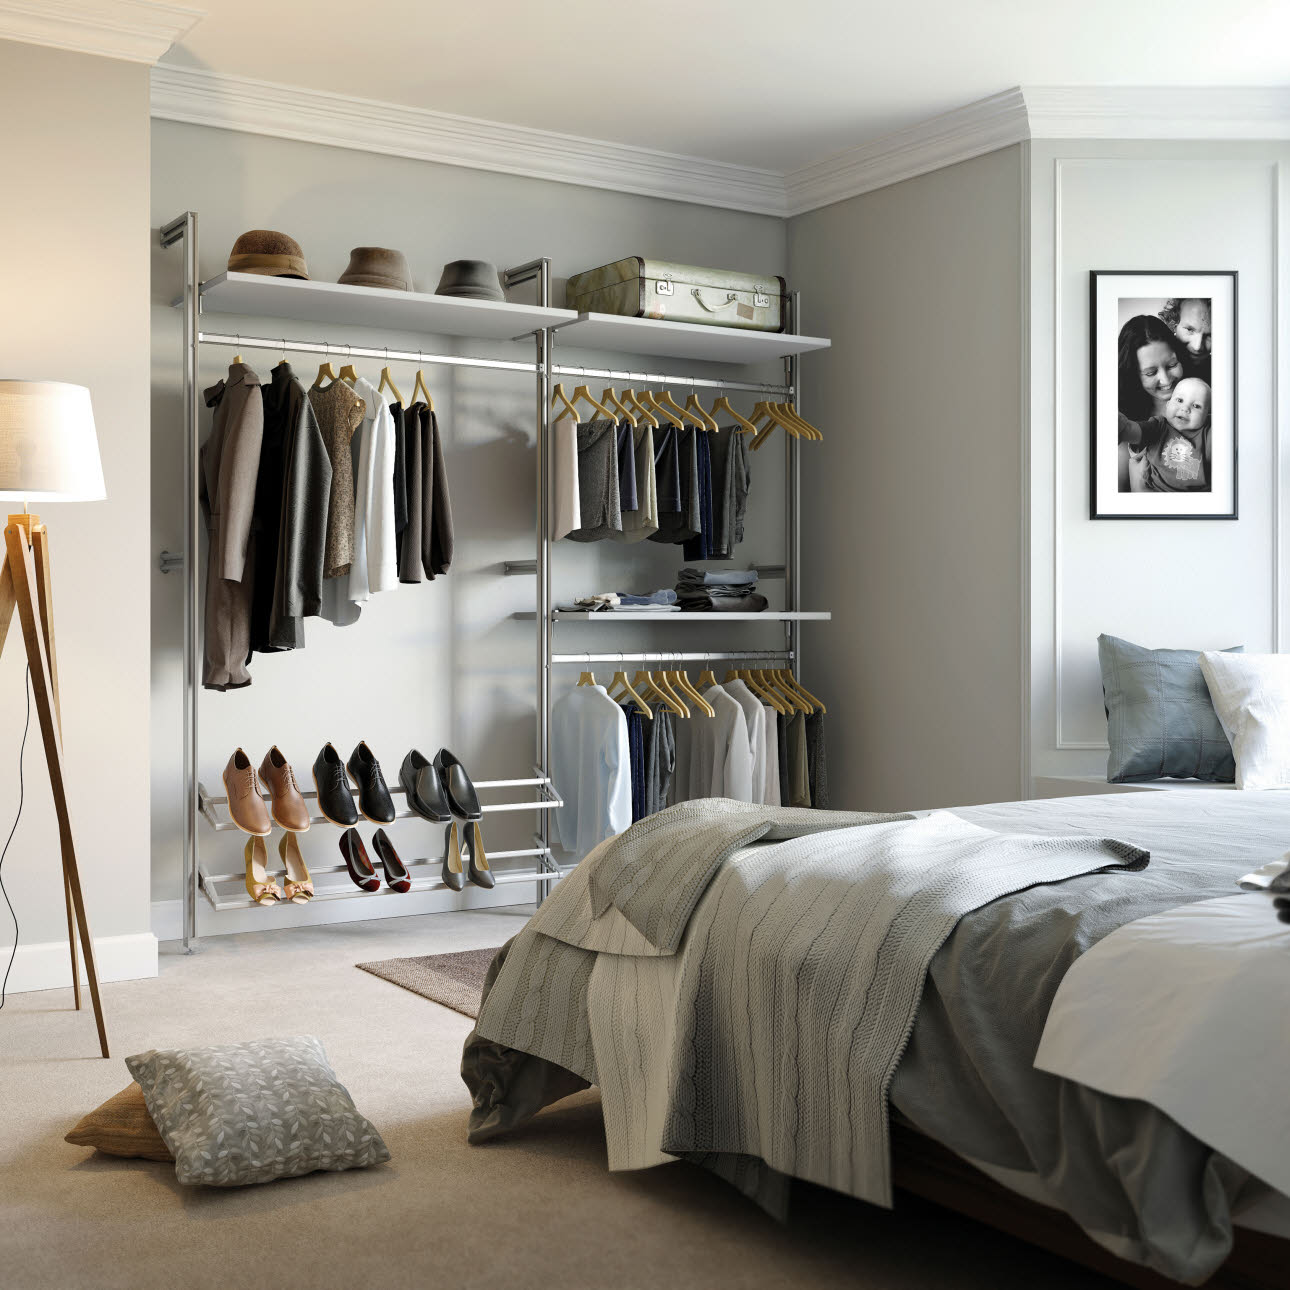 Bedroom shelving & clothes rail storage male clothing